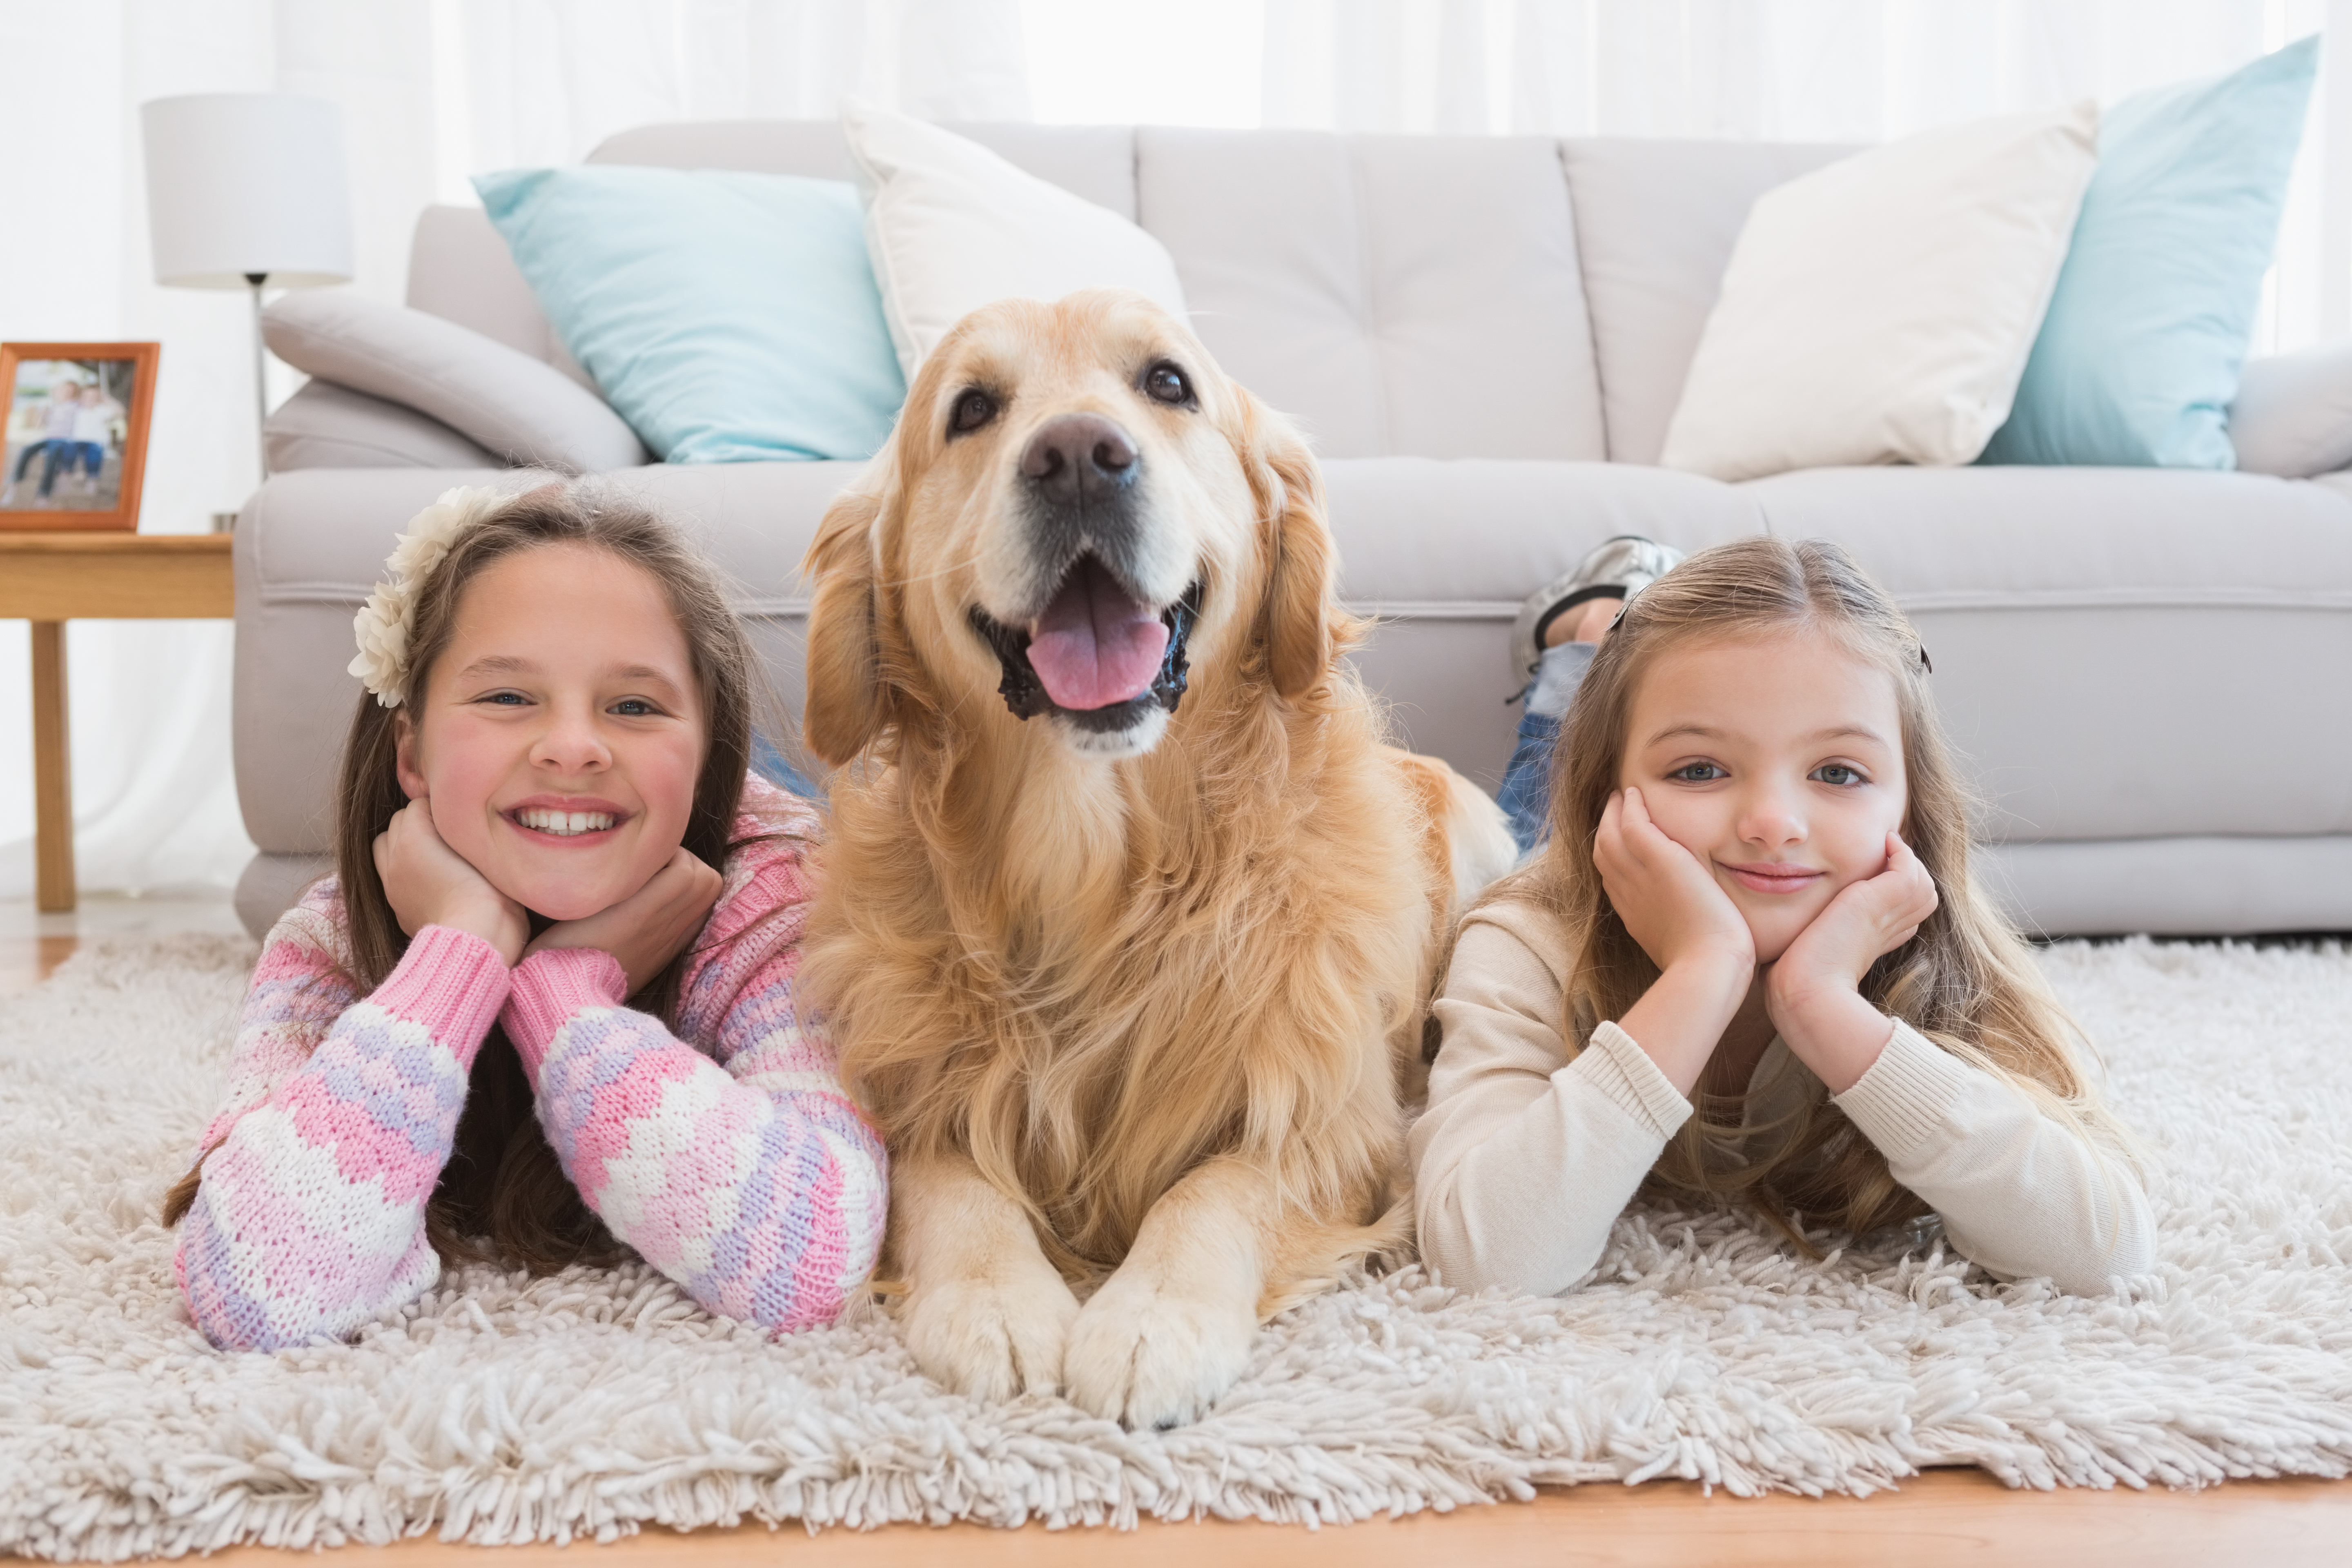 Sisters lying on rug with golden retriever smiling at camera at home in the living room